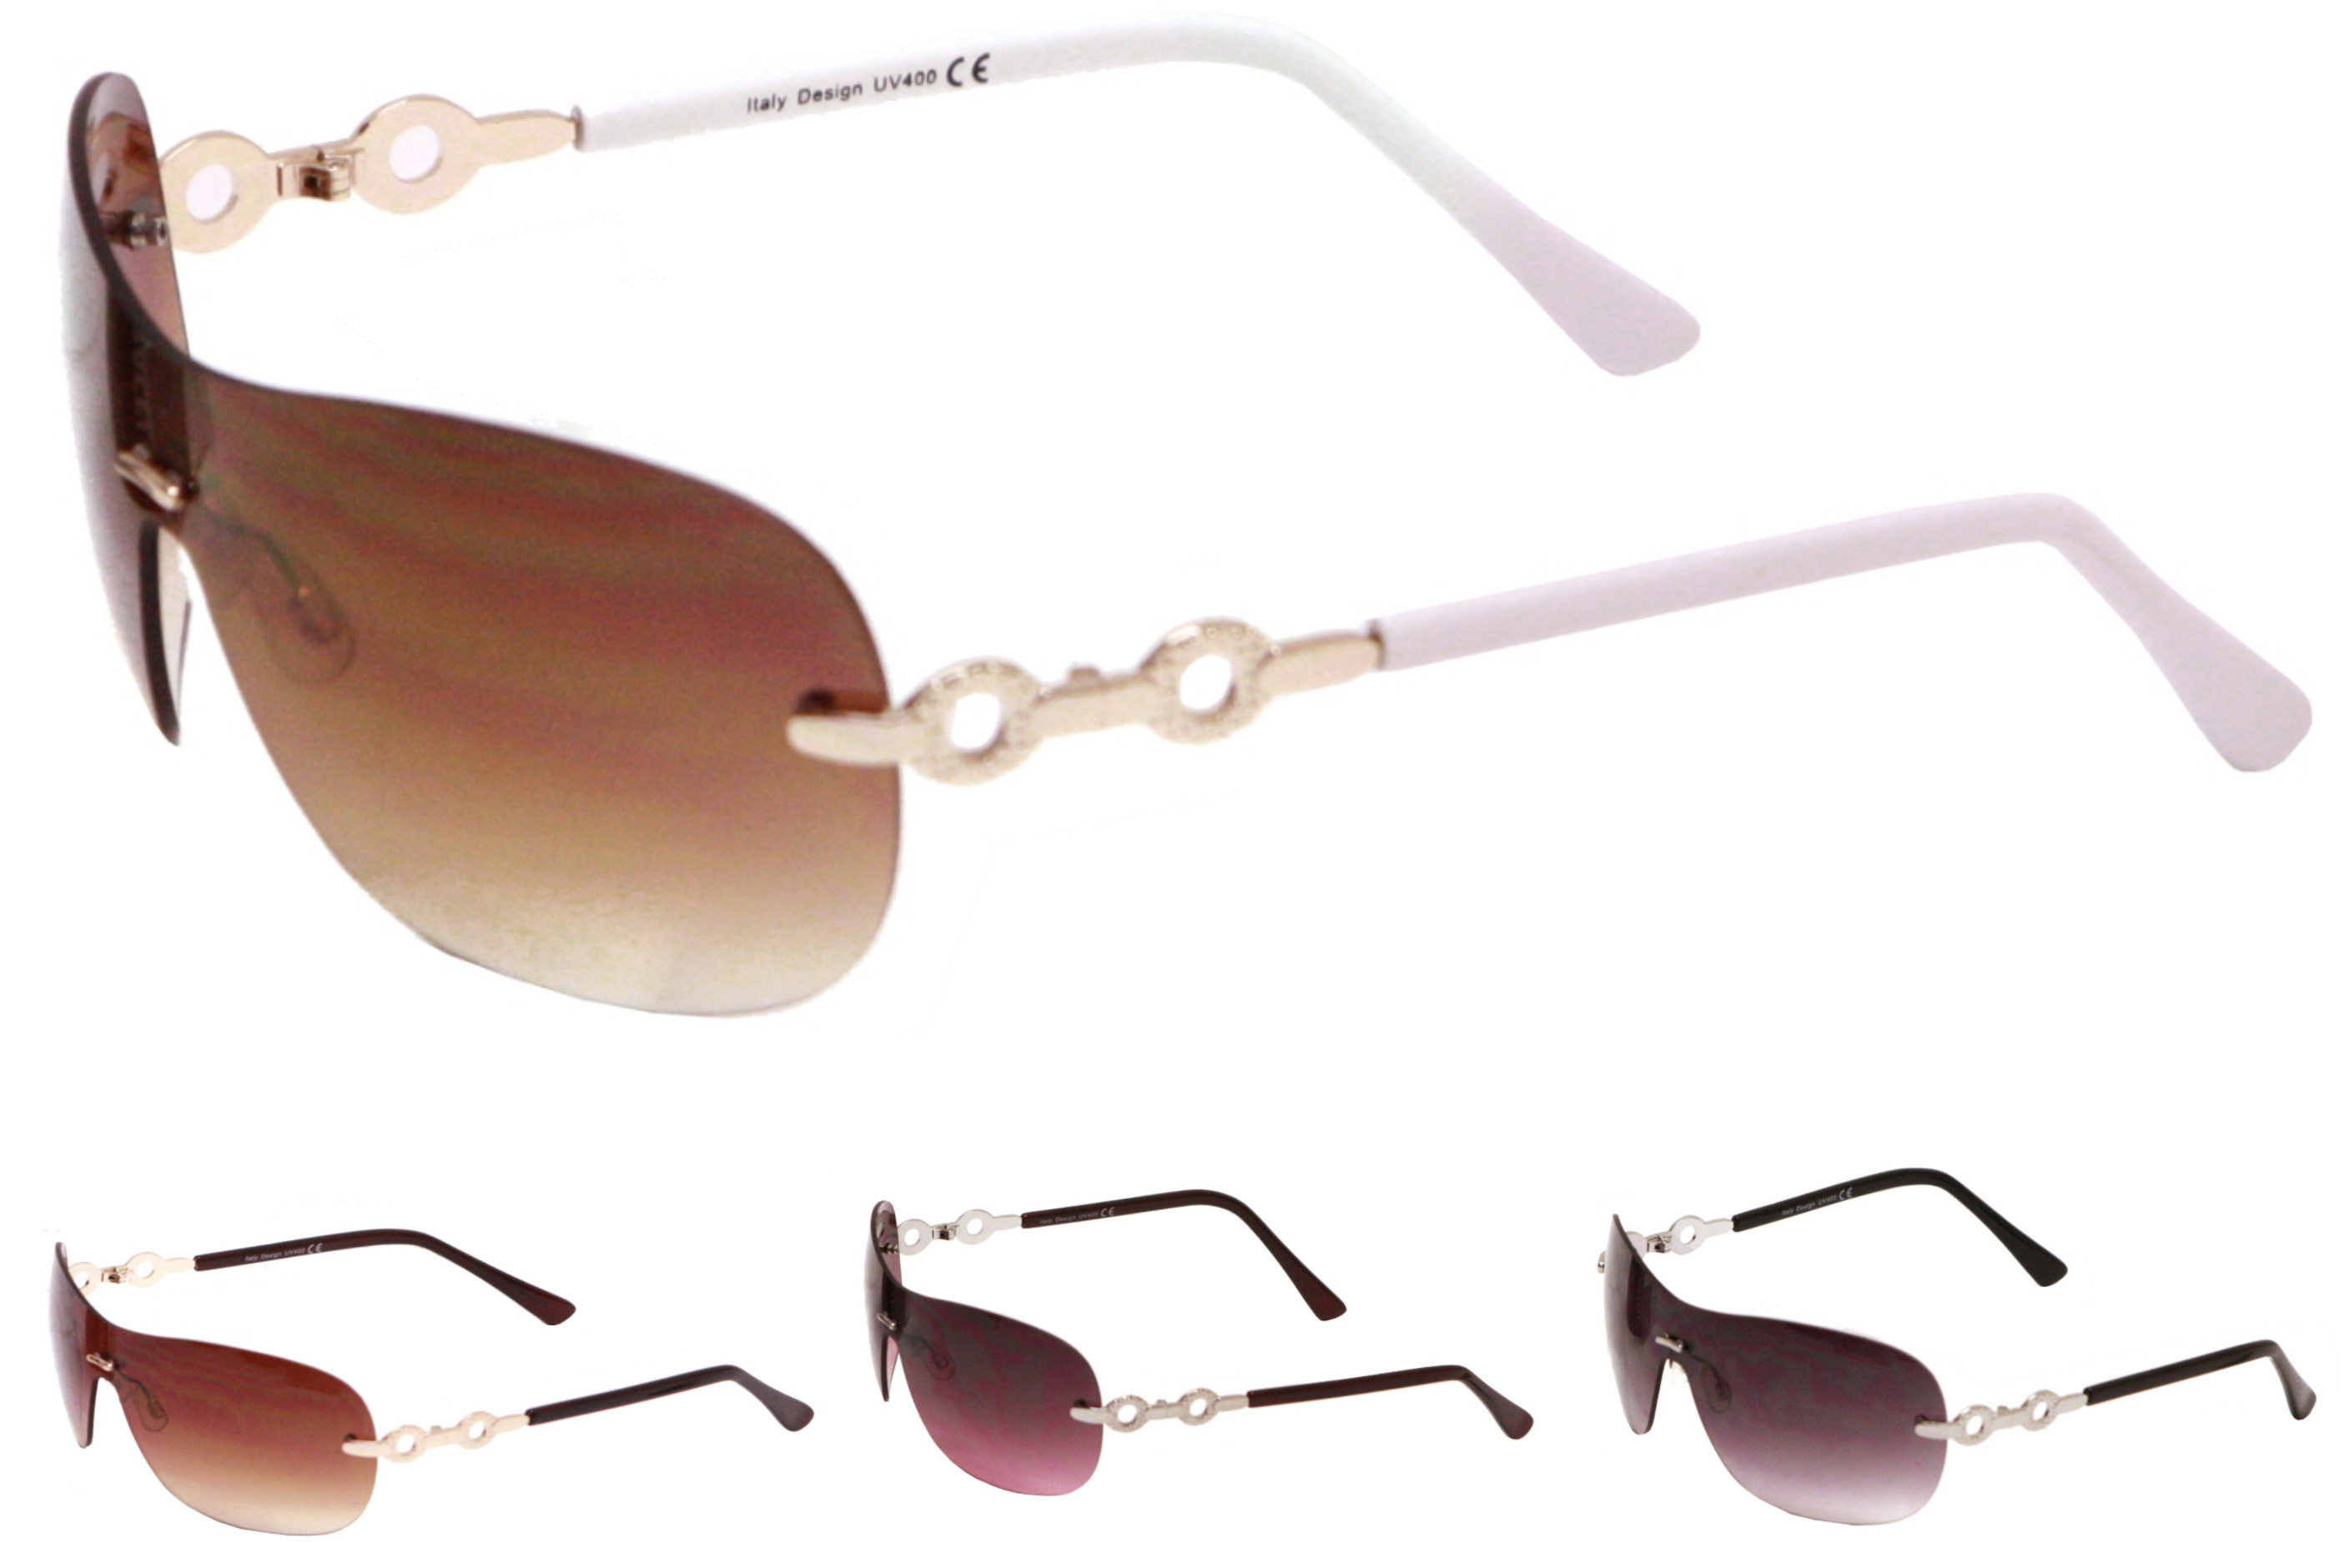 Adult Frameless Sunglasses With Arm Detail - 4 Assorted